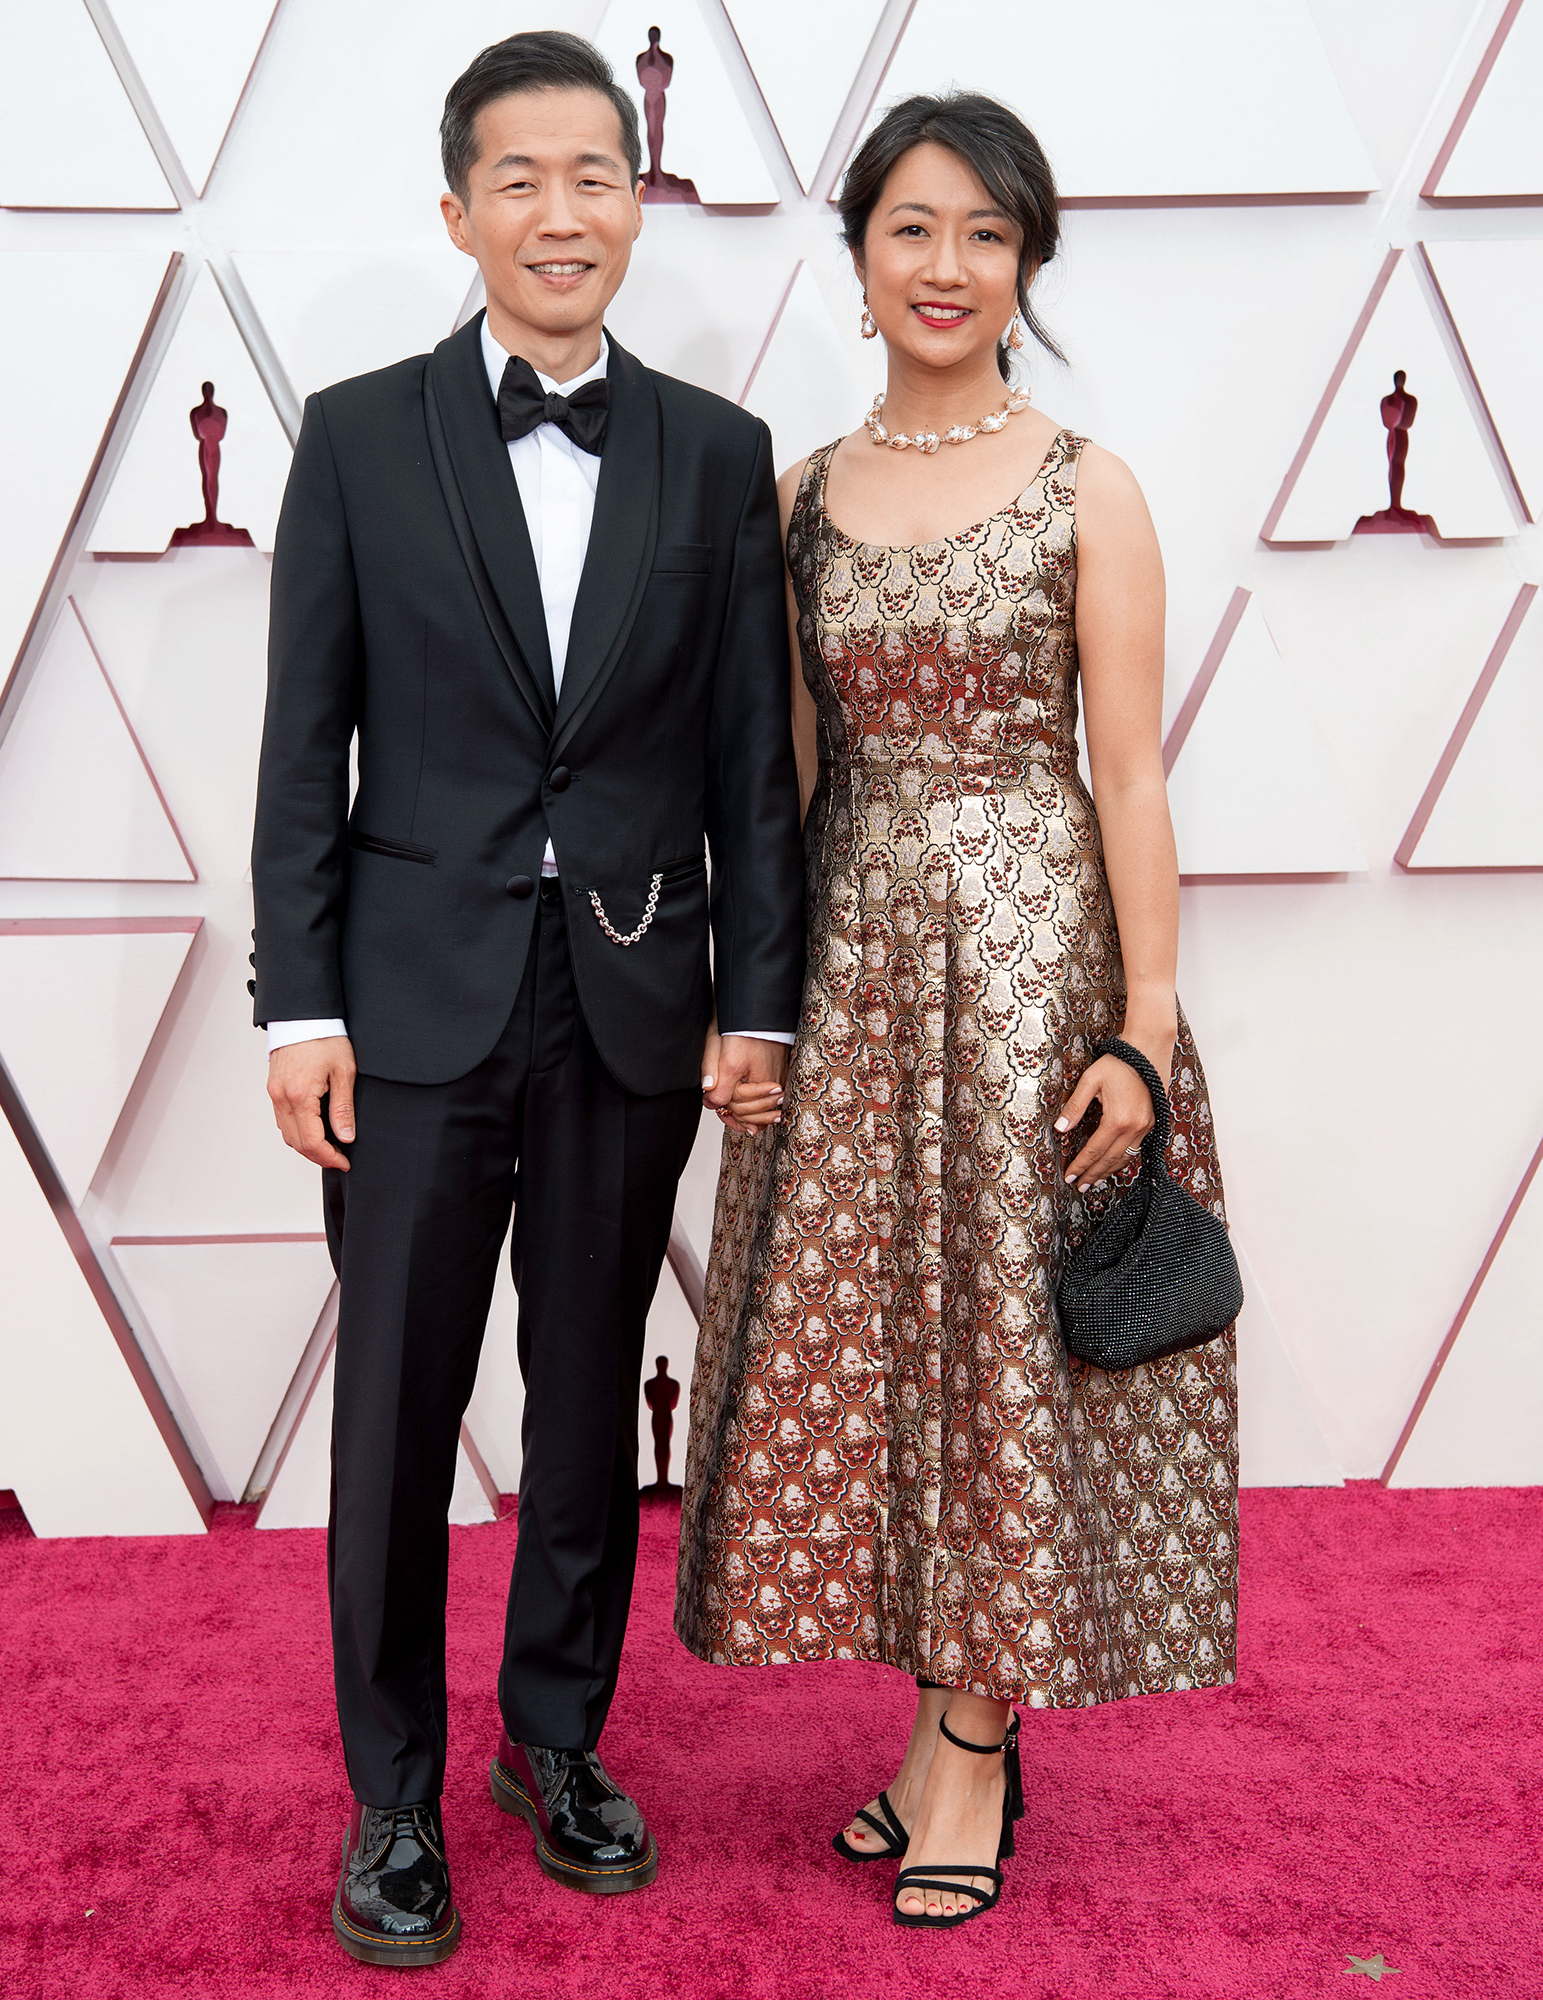 Lee Isaac Chung, who was nominated for Best Director and Best Original Screenplay for Minari, smiled and held hands with his wife, Valerie Chung, on the red carpet.